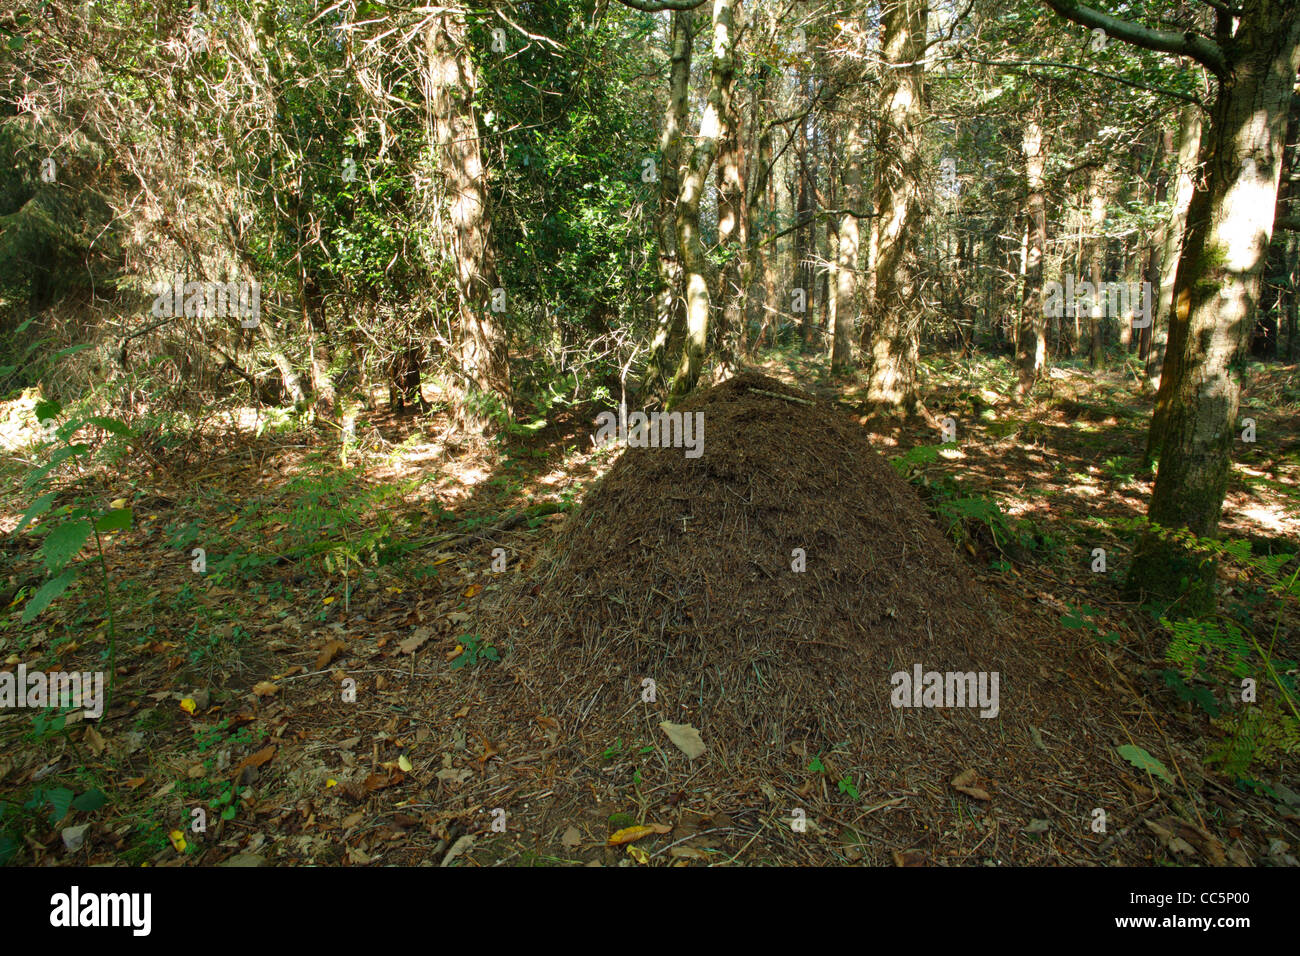 Wood ant (Formica sp.) nest in coniferous woodland. In the Forest of Dean, Gloucestershire, England. September. - Stock Image